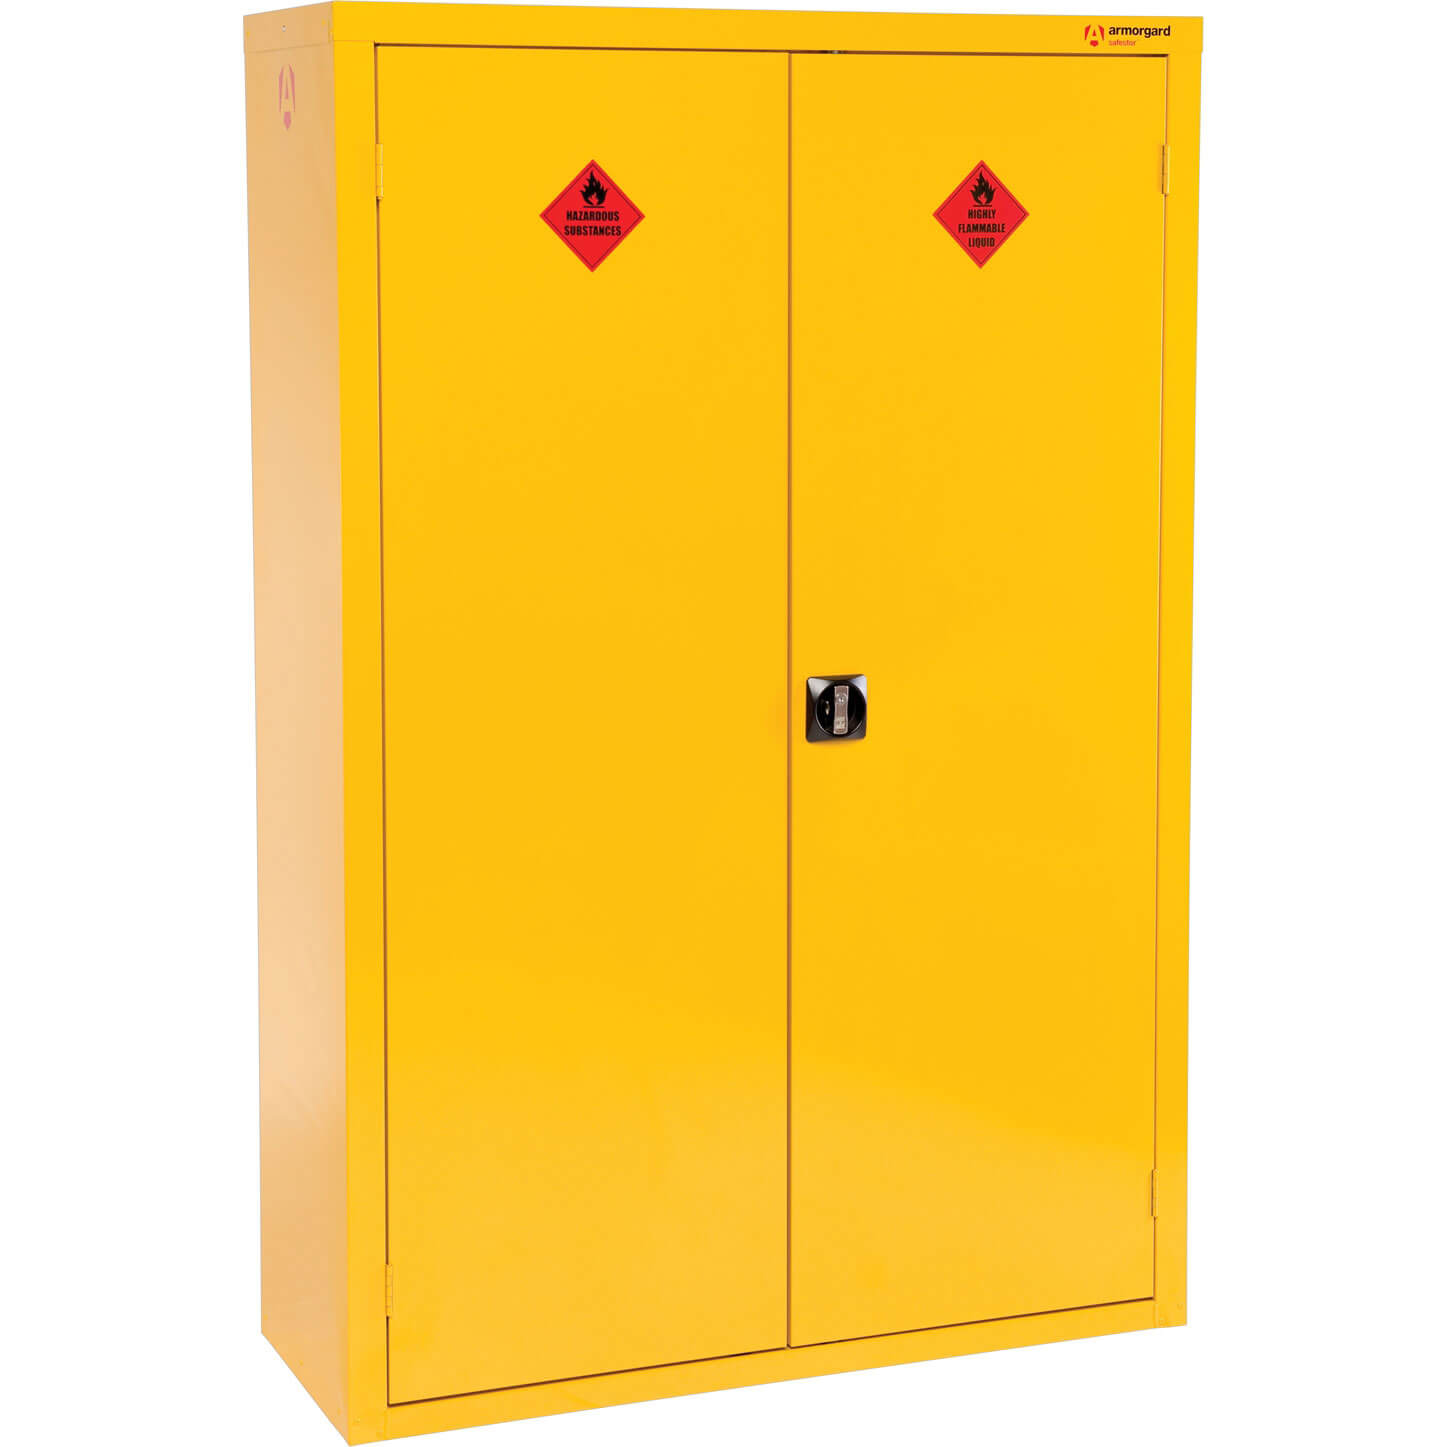 Armorgard Safestor Hazardous Materials Cabinet 1200mm x 460mm x 1800mm